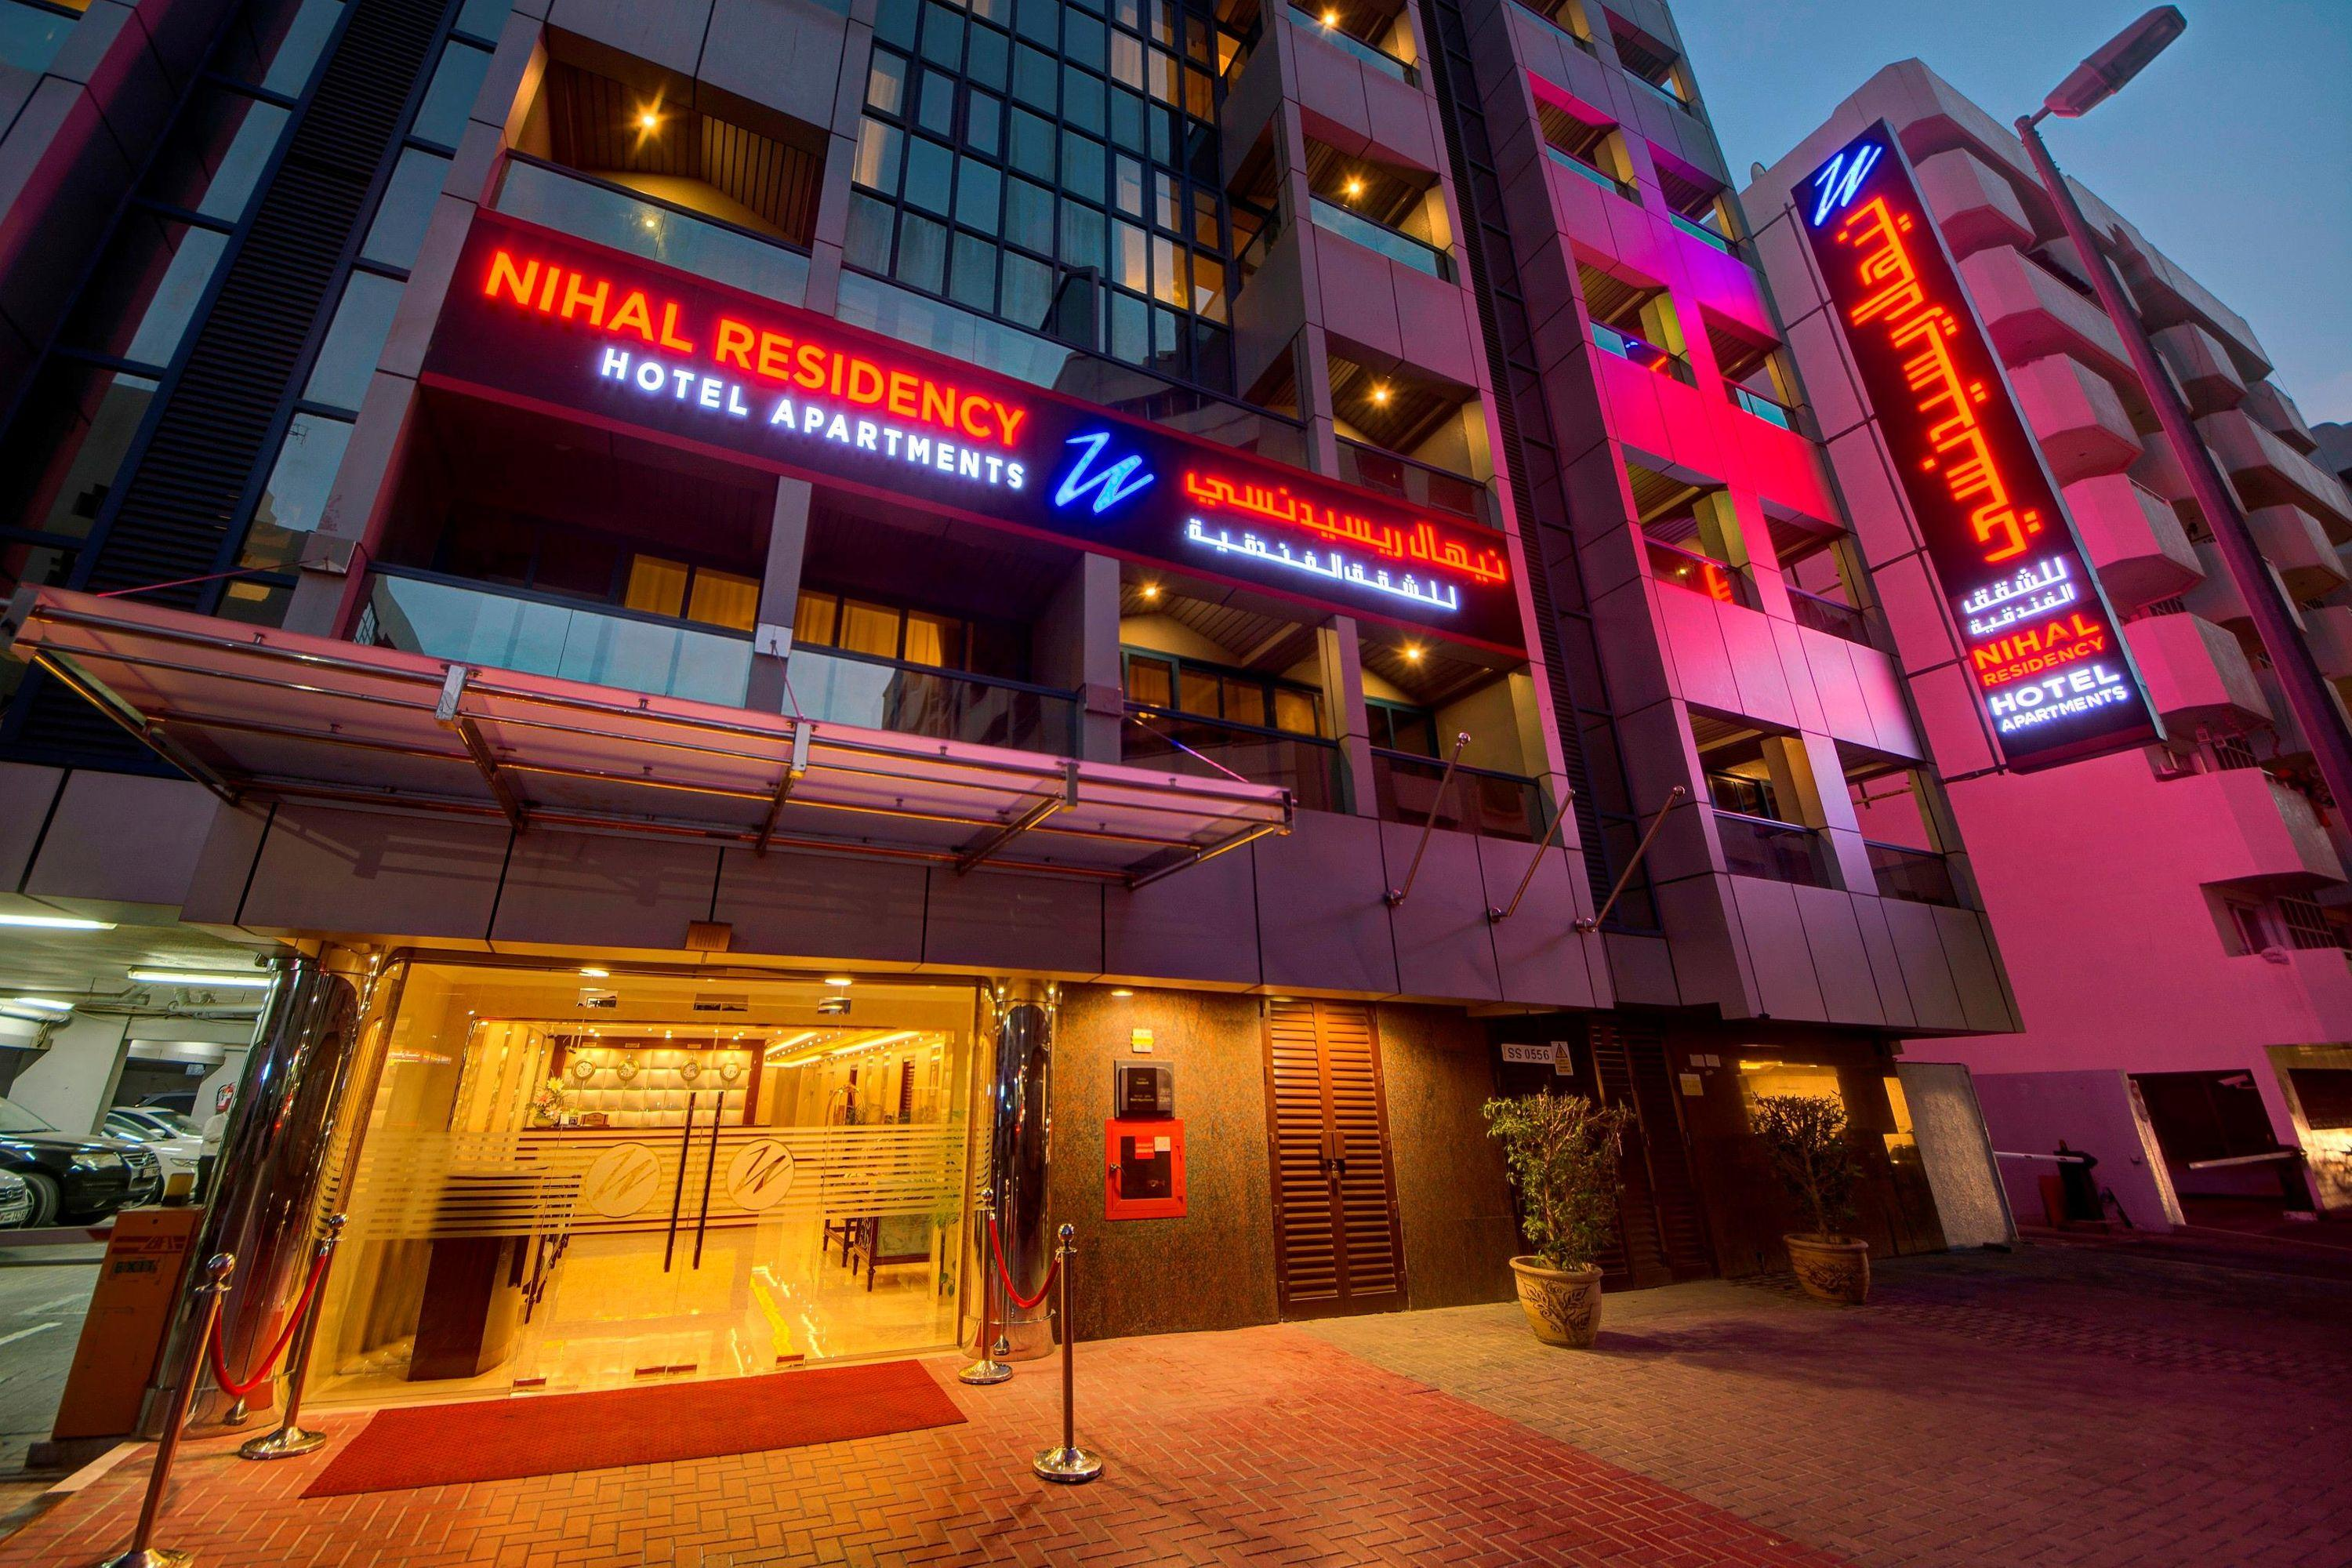 Nihal Residency Hotel Apartments